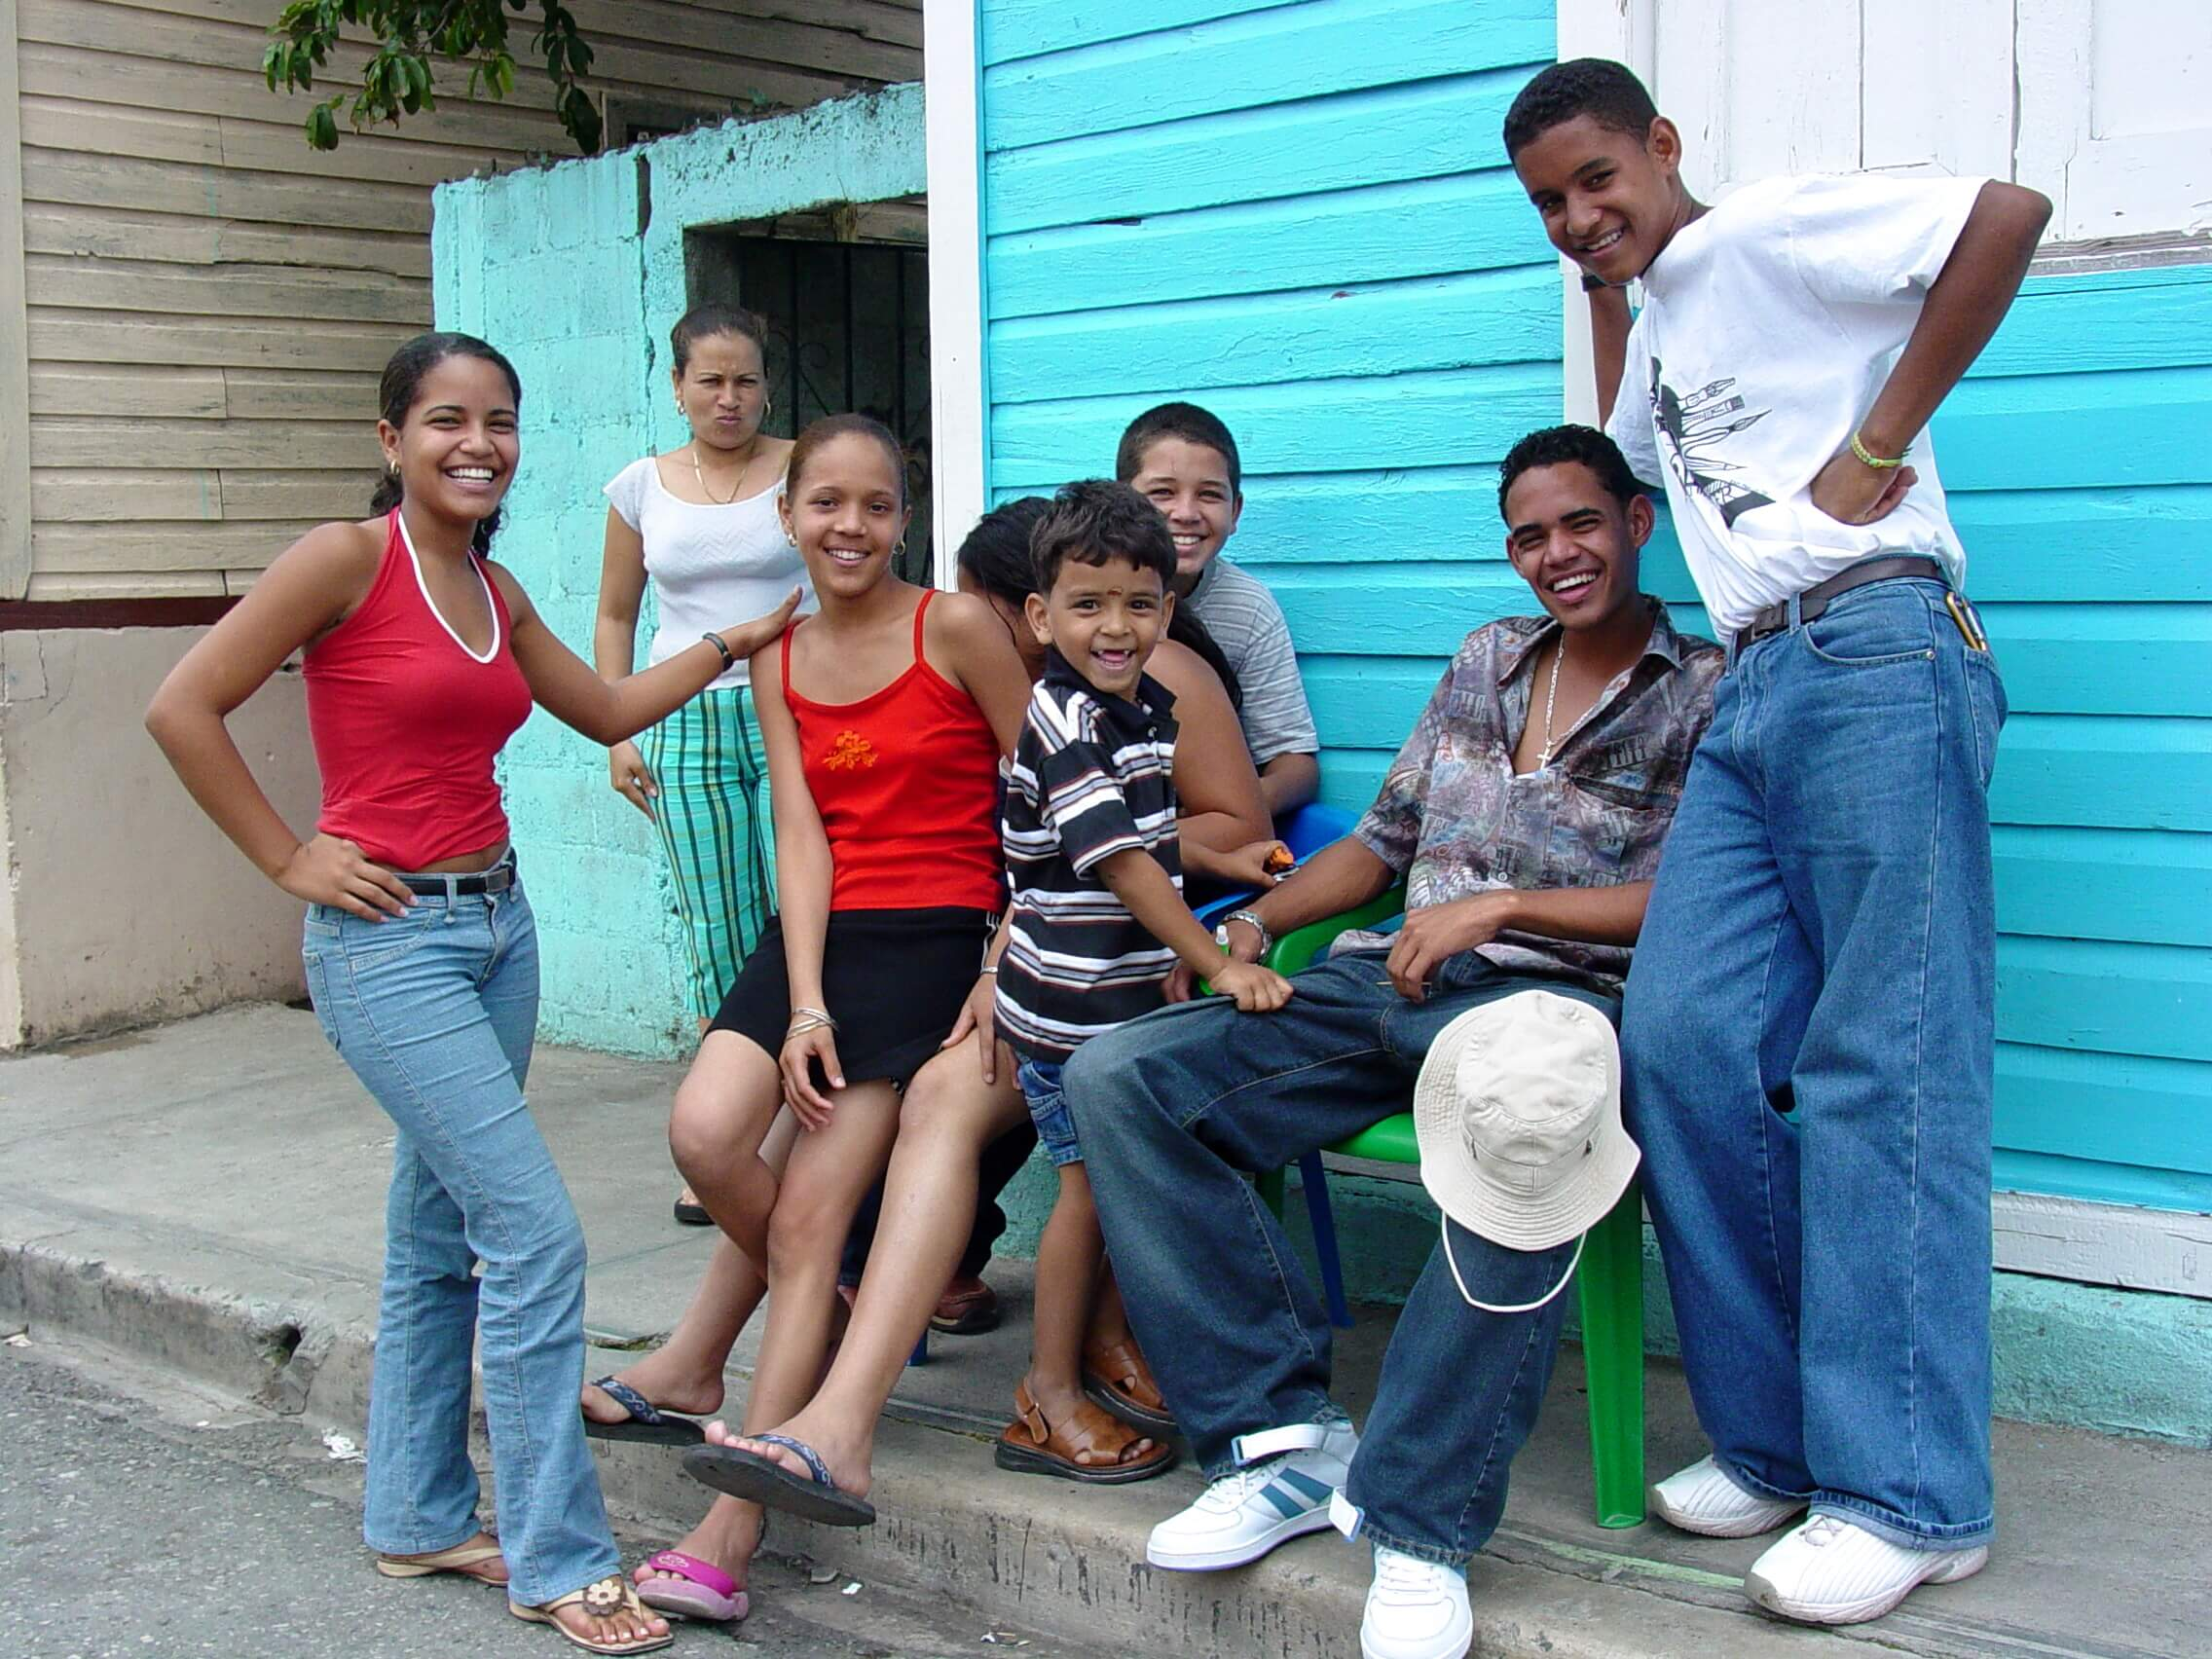 Friendly locals in the streets of the Dominican Republic.